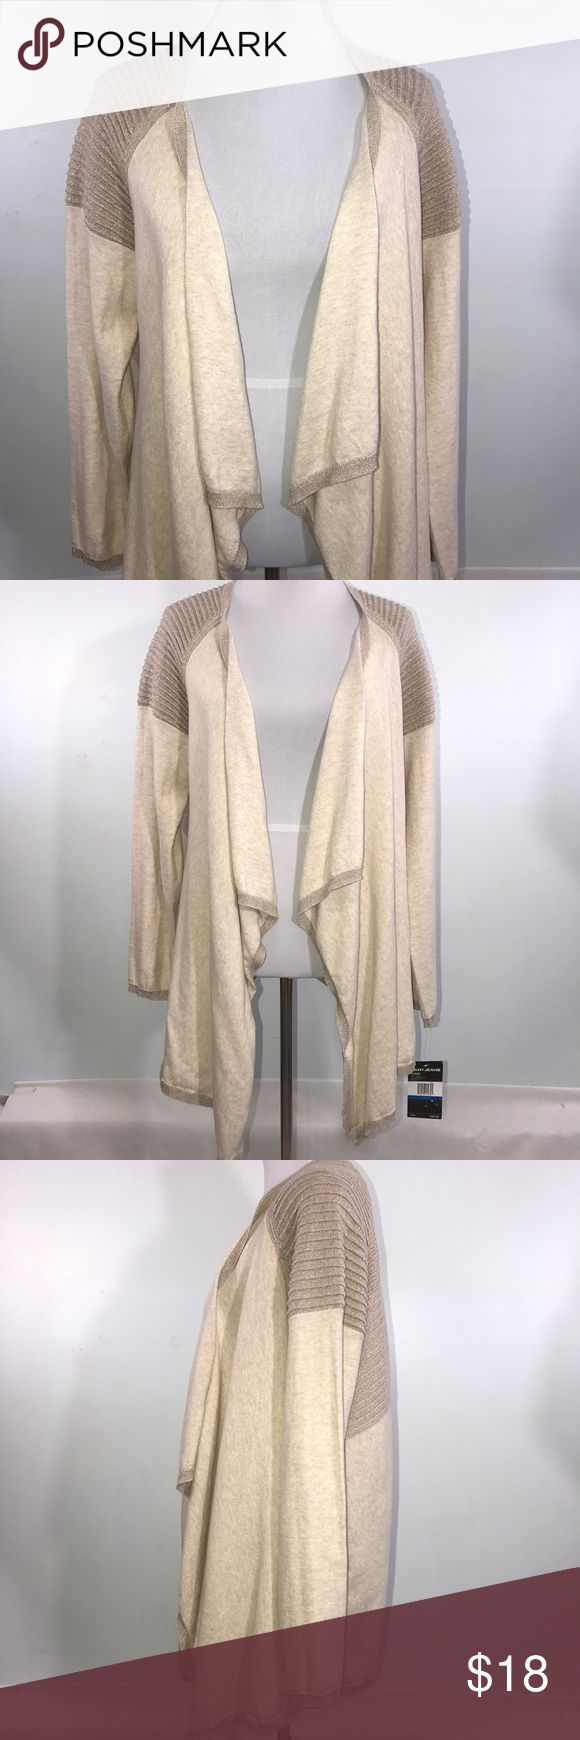 """DKNY Jeans Woman's L/S Swing Sweater XL Tan Gold DKNY Jeans long sleeve tan and gold swing sweater. Lying flat, approximate measurements are: bust 23""""; waist 25""""; hip 26""""; length 32-38"""". (C03-19).     🌼 No holes, piling or stains. Items stored in smoke free, pet free, perfume free environment. No trades or modeling. Same or next day shipping.  Save by bundling. All offers should be submitted with the offer button. DKNY Jeans Sweaters"""